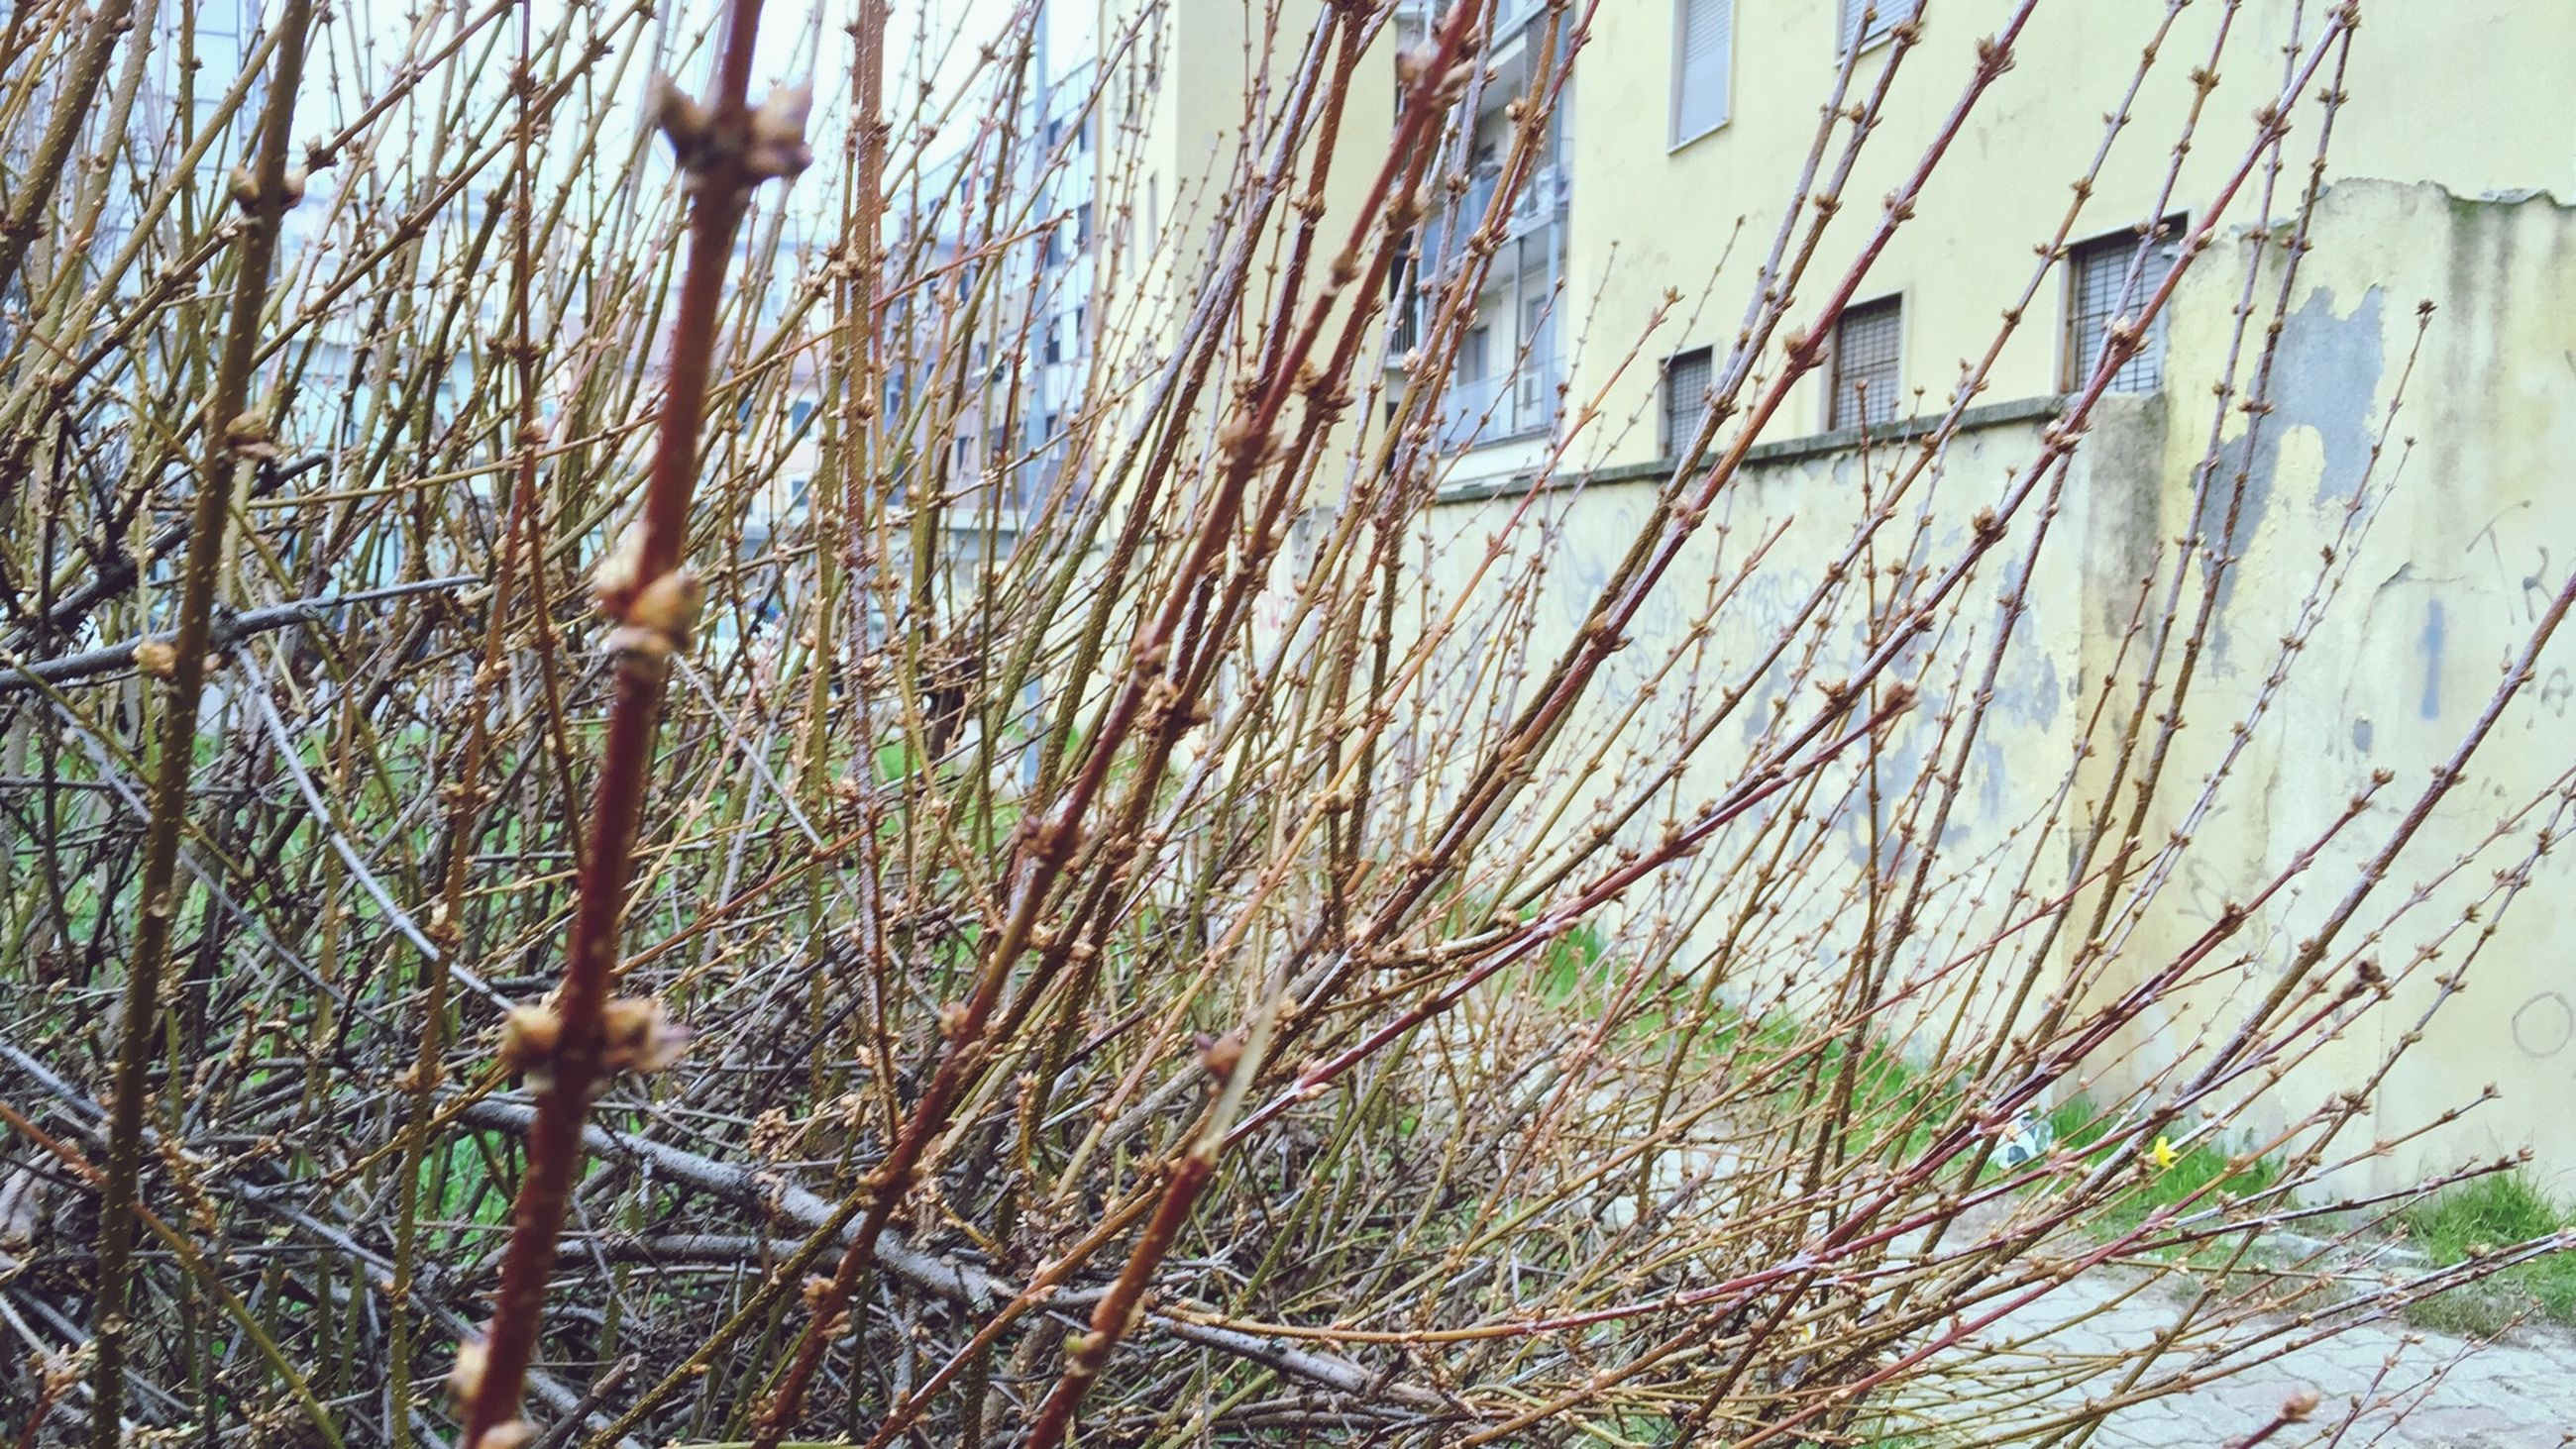 growth, plant, nature, close-up, branch, growing, day, built structure, building exterior, twig, outdoors, tree, leaf, stem, architecture, no people, beauty in nature, water, focus on foreground, tranquility